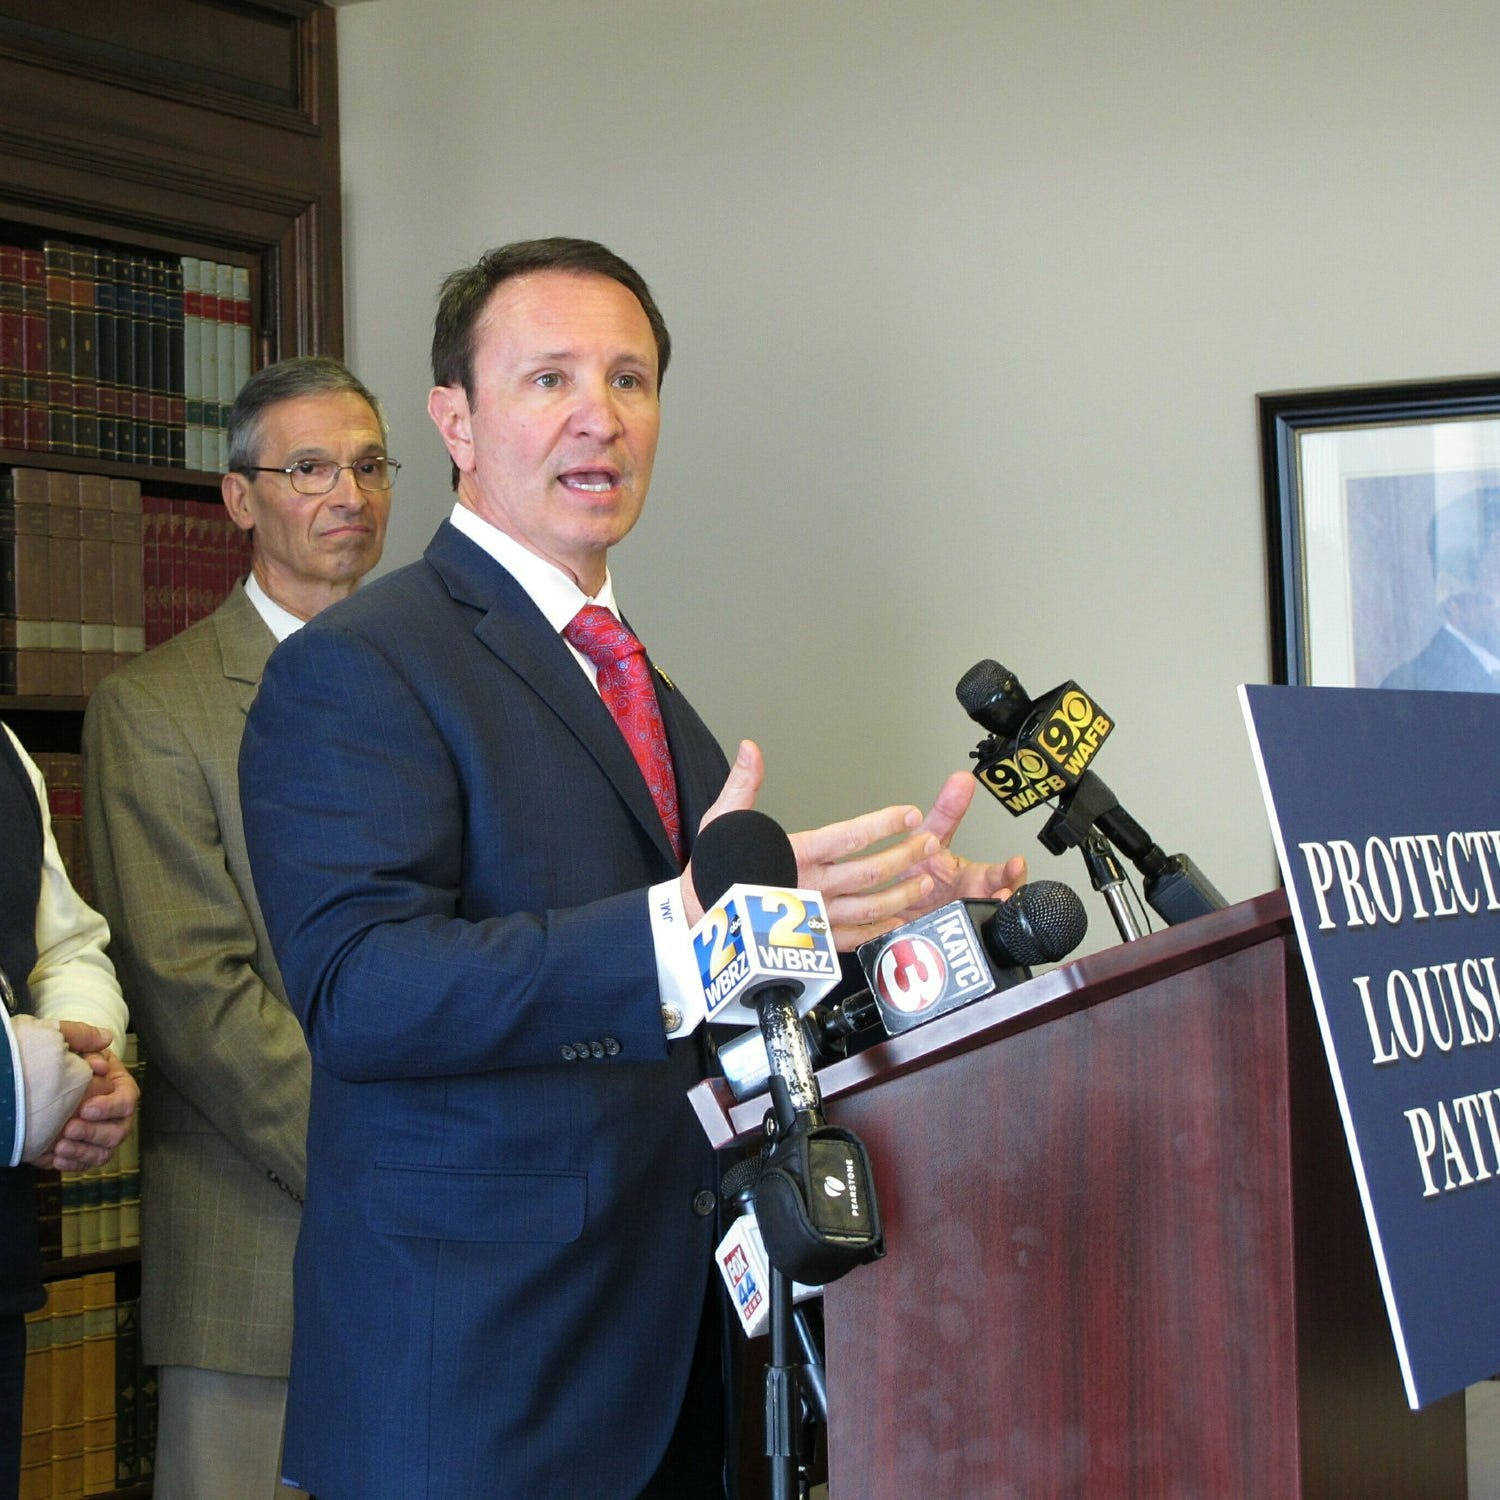 La. supports Medicaid expansion, pre-existing protection, LSU survey shows